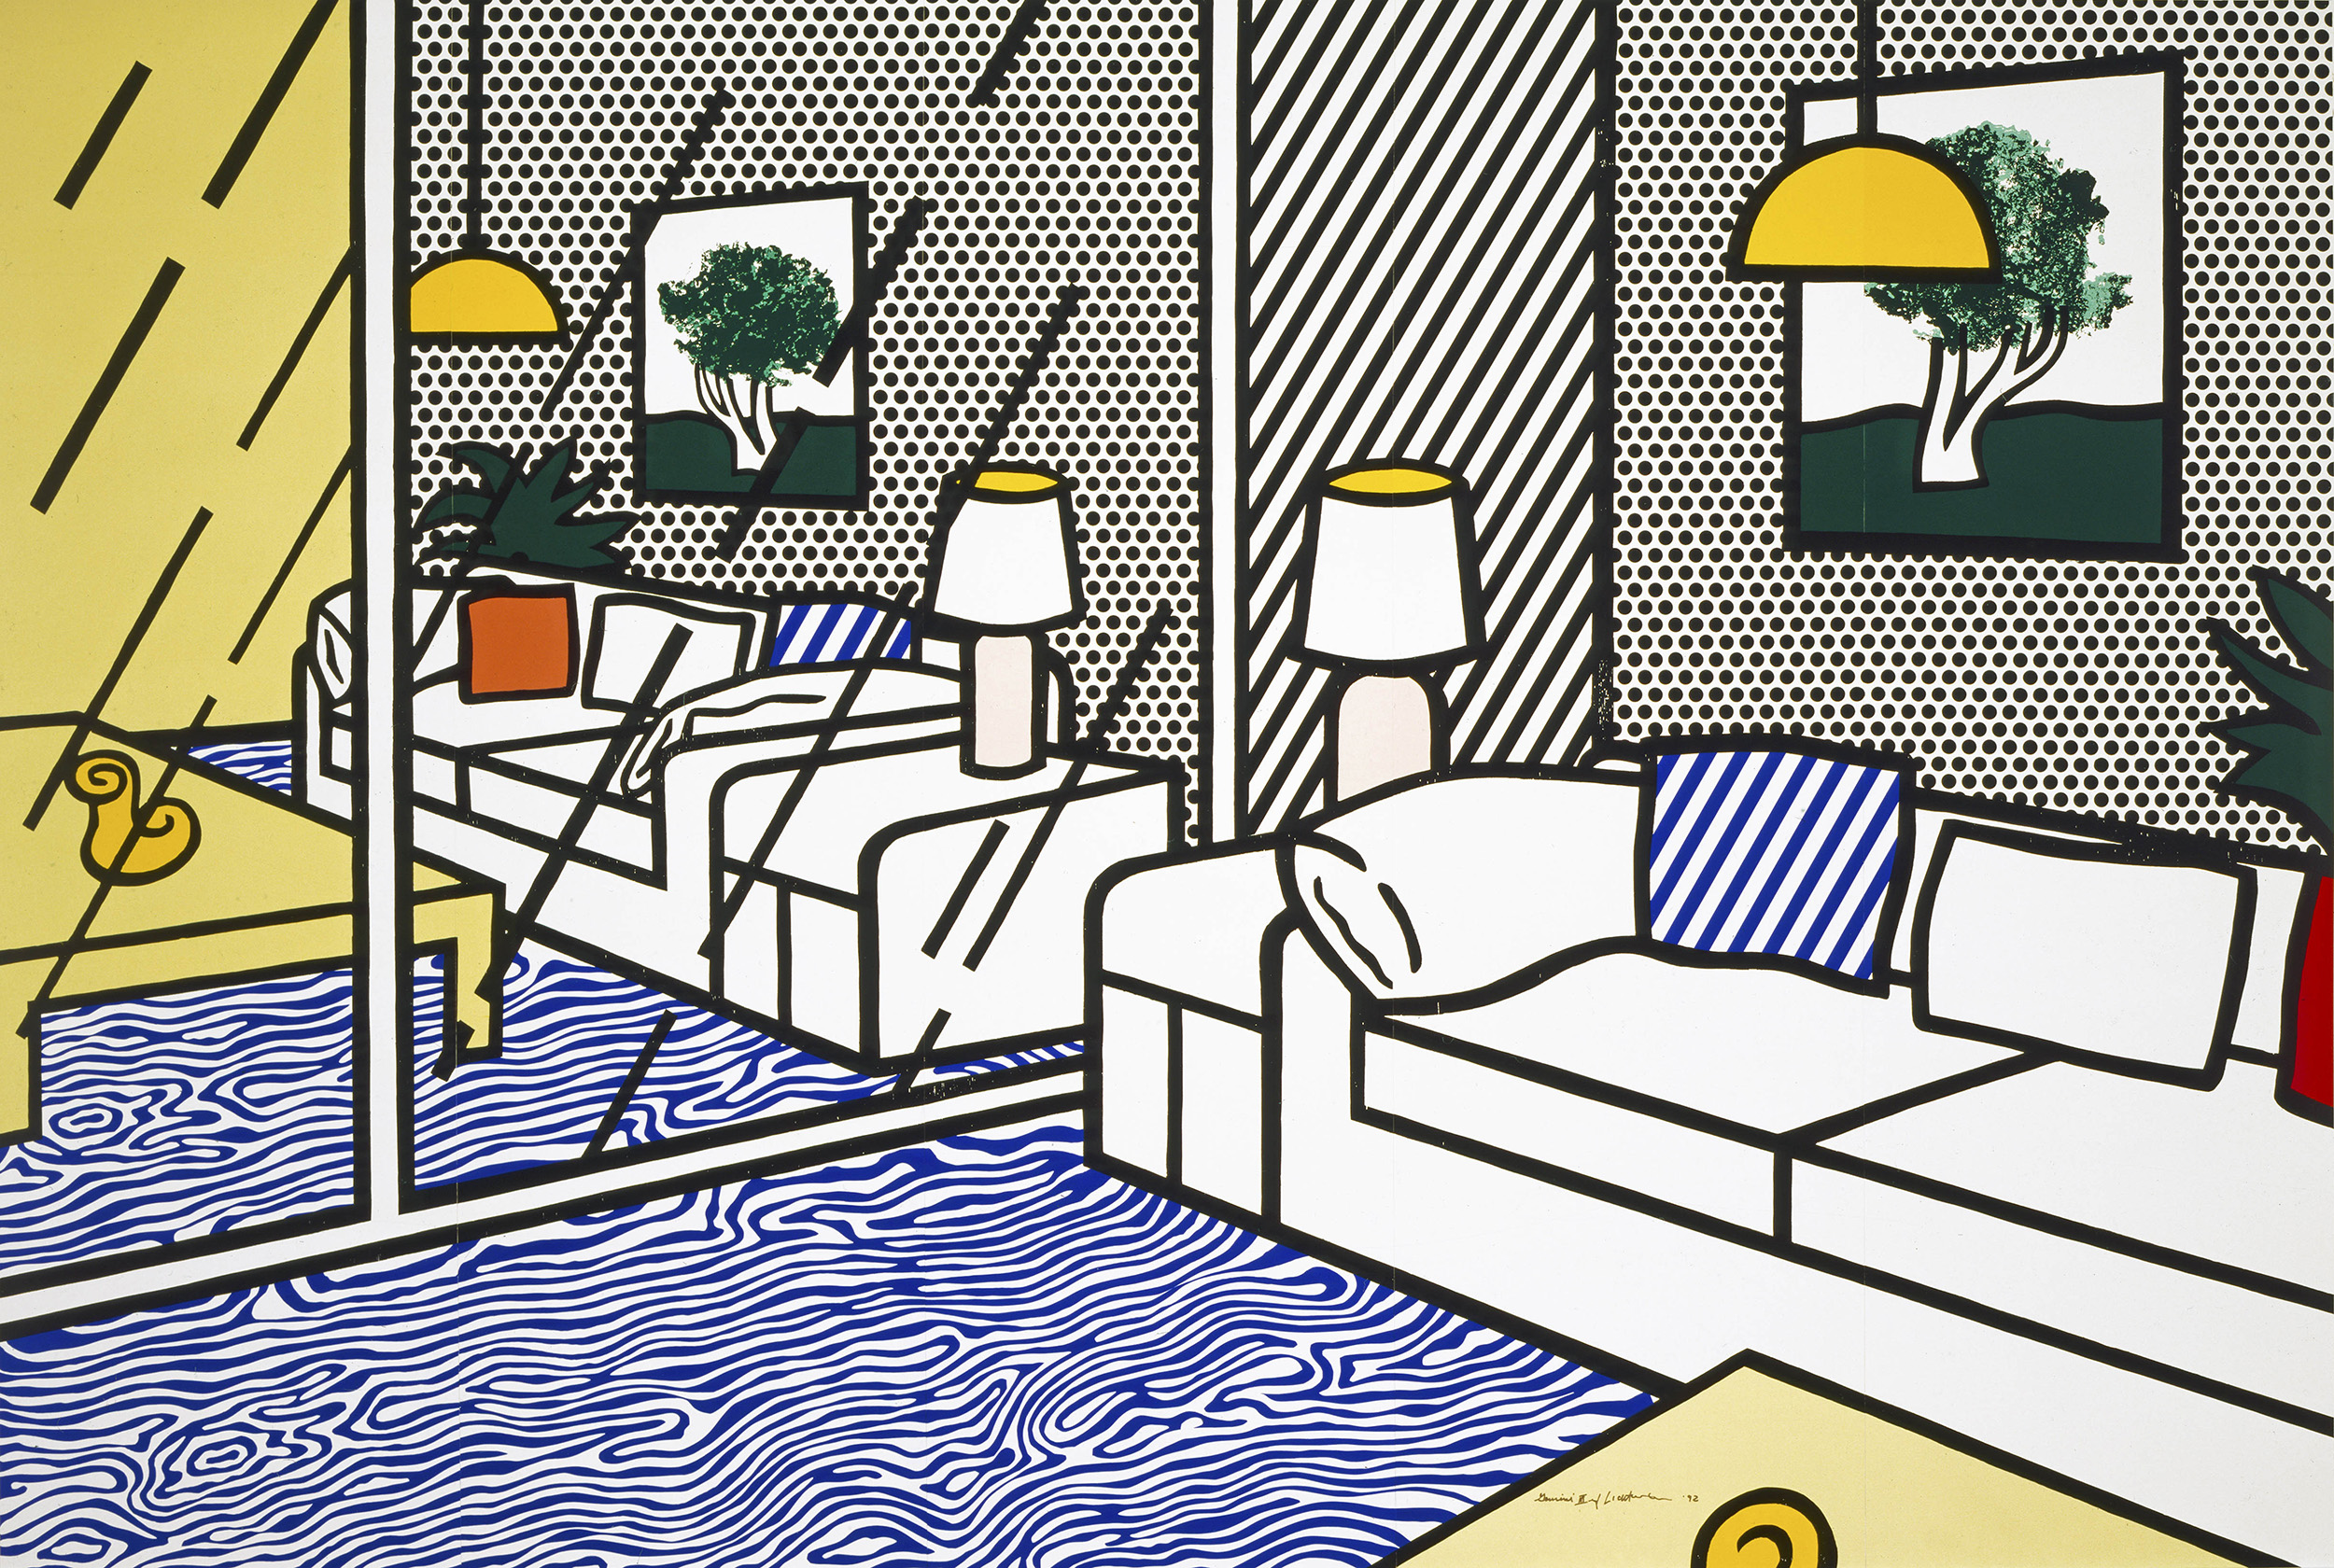 Roy Lichtenstein, Wallpaper with Blue Floor Interior, 1992, ©Estate of Roy Lichtenstein/Gemini G.E.L., courtesy of the Jordan Schnitzer Family Foundation, Skirball Cultural Center, Los Angeles